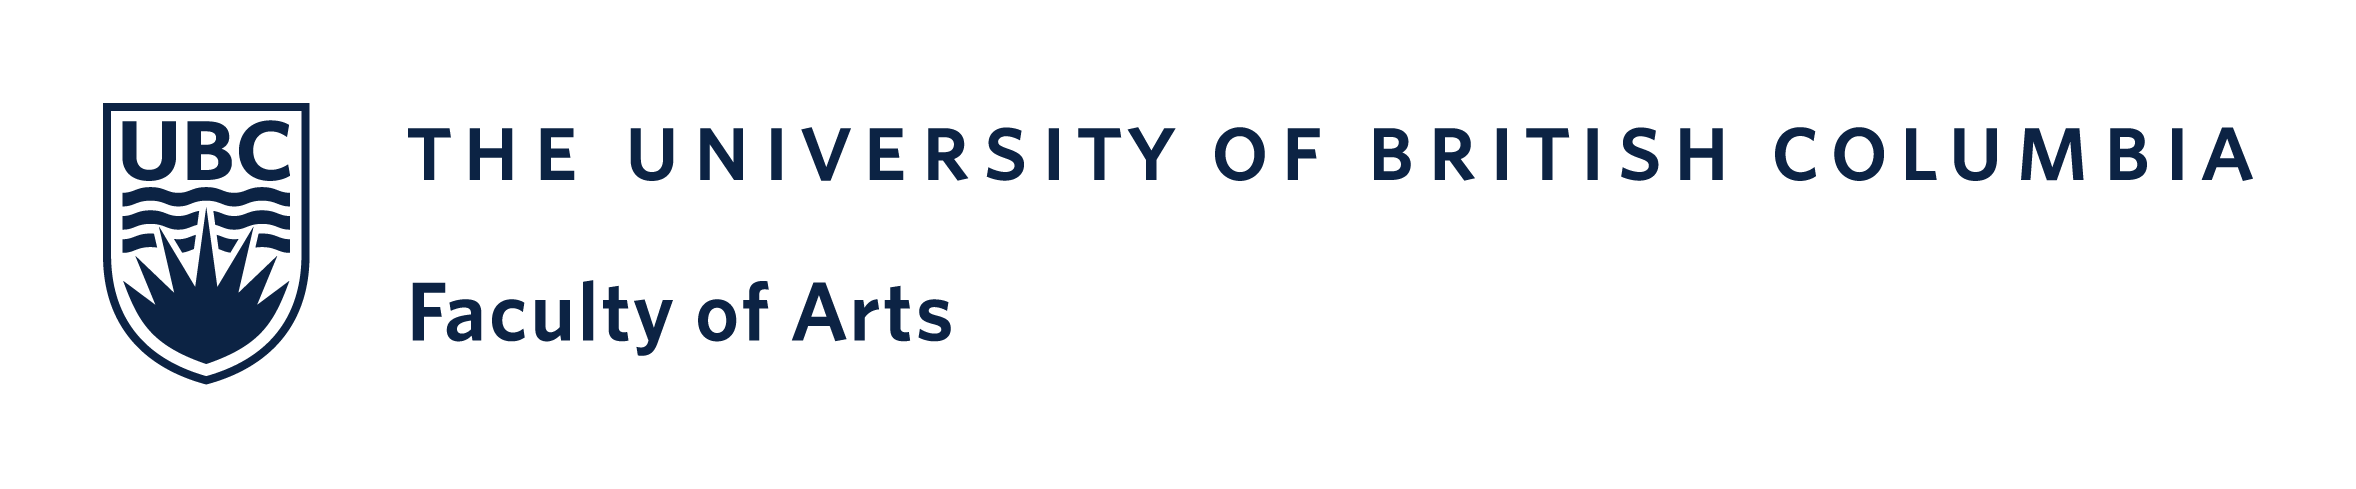 UBC Faculty of Arts logo